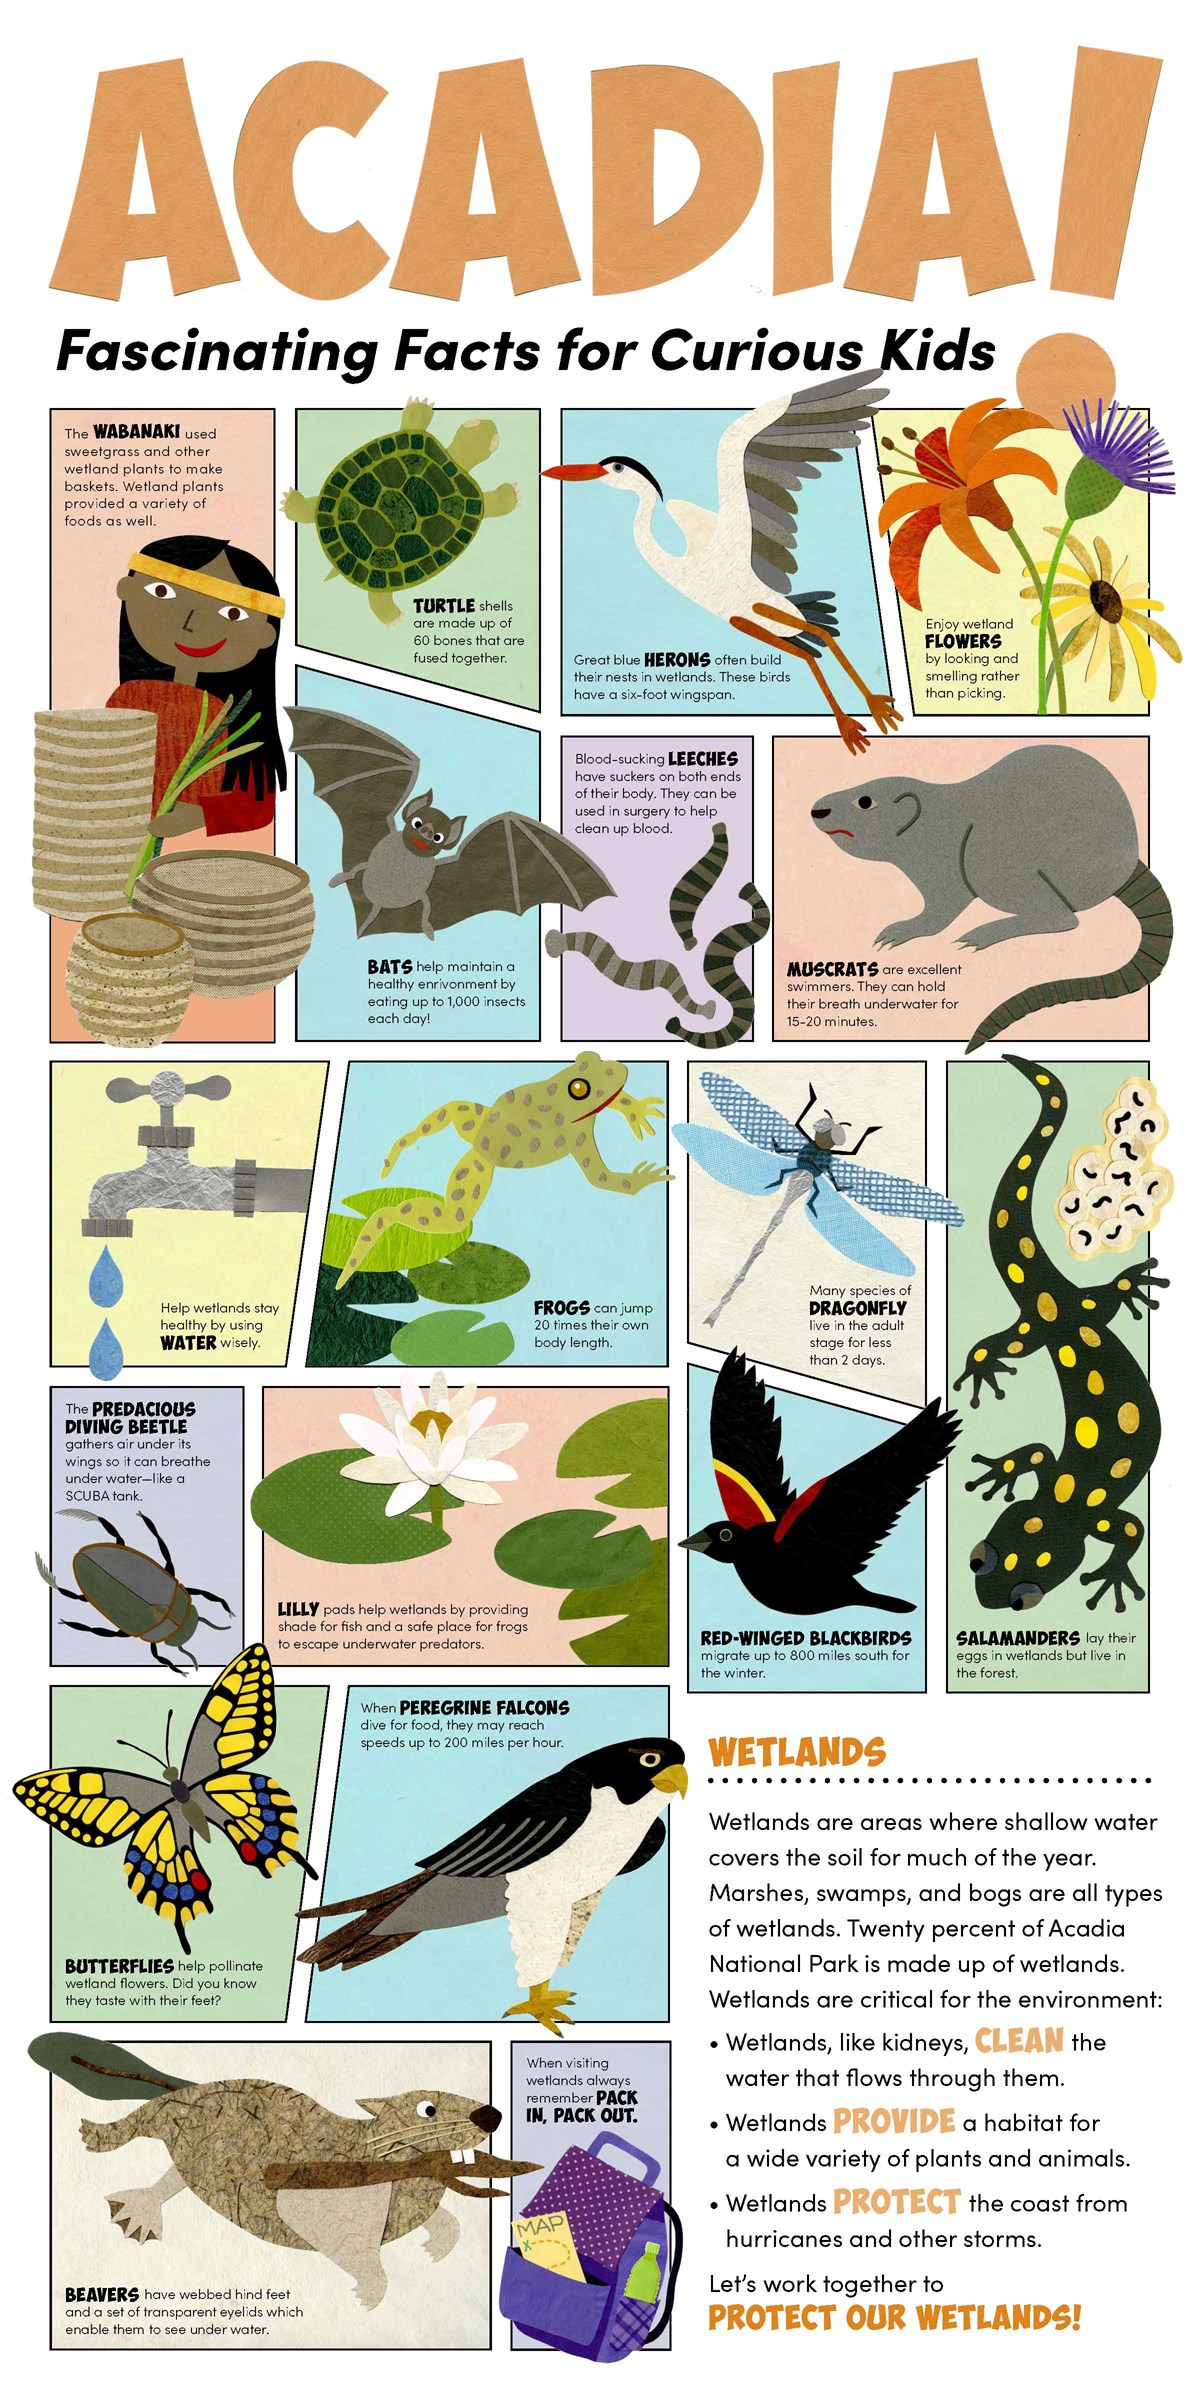 Children's poster with many different graphics and text explaining different fun facts about the cultural and natural resources of Acadia National Park. This poster focuses on wetlands and the images are made from cut paper.